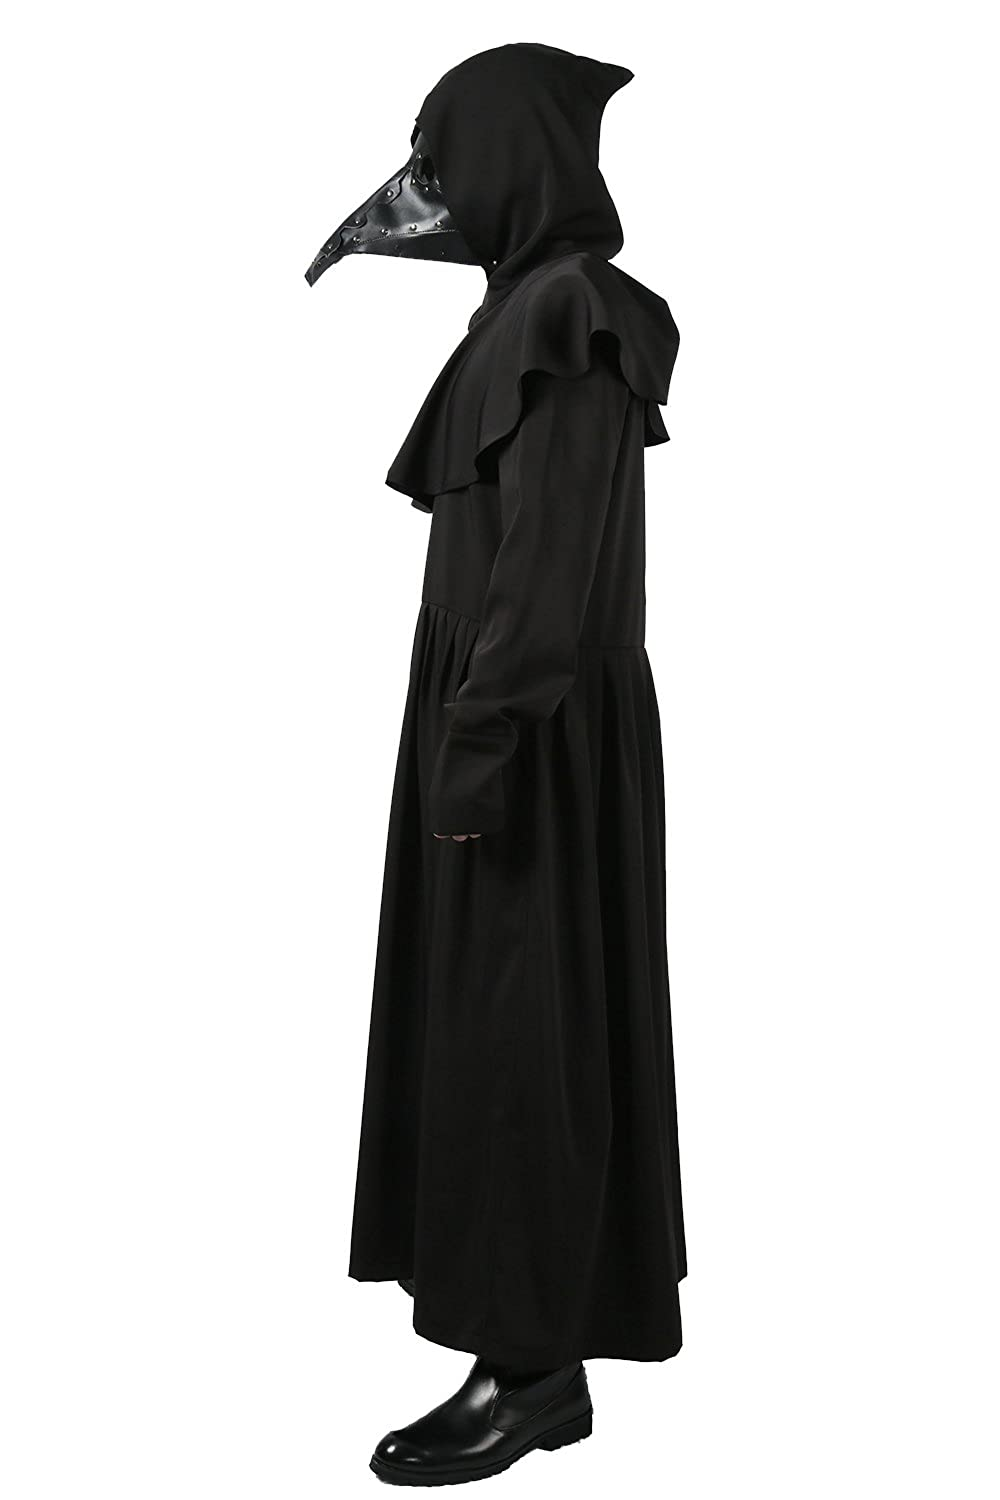 Black Plague Doctor Deluxe Cosplay Costume Outfit